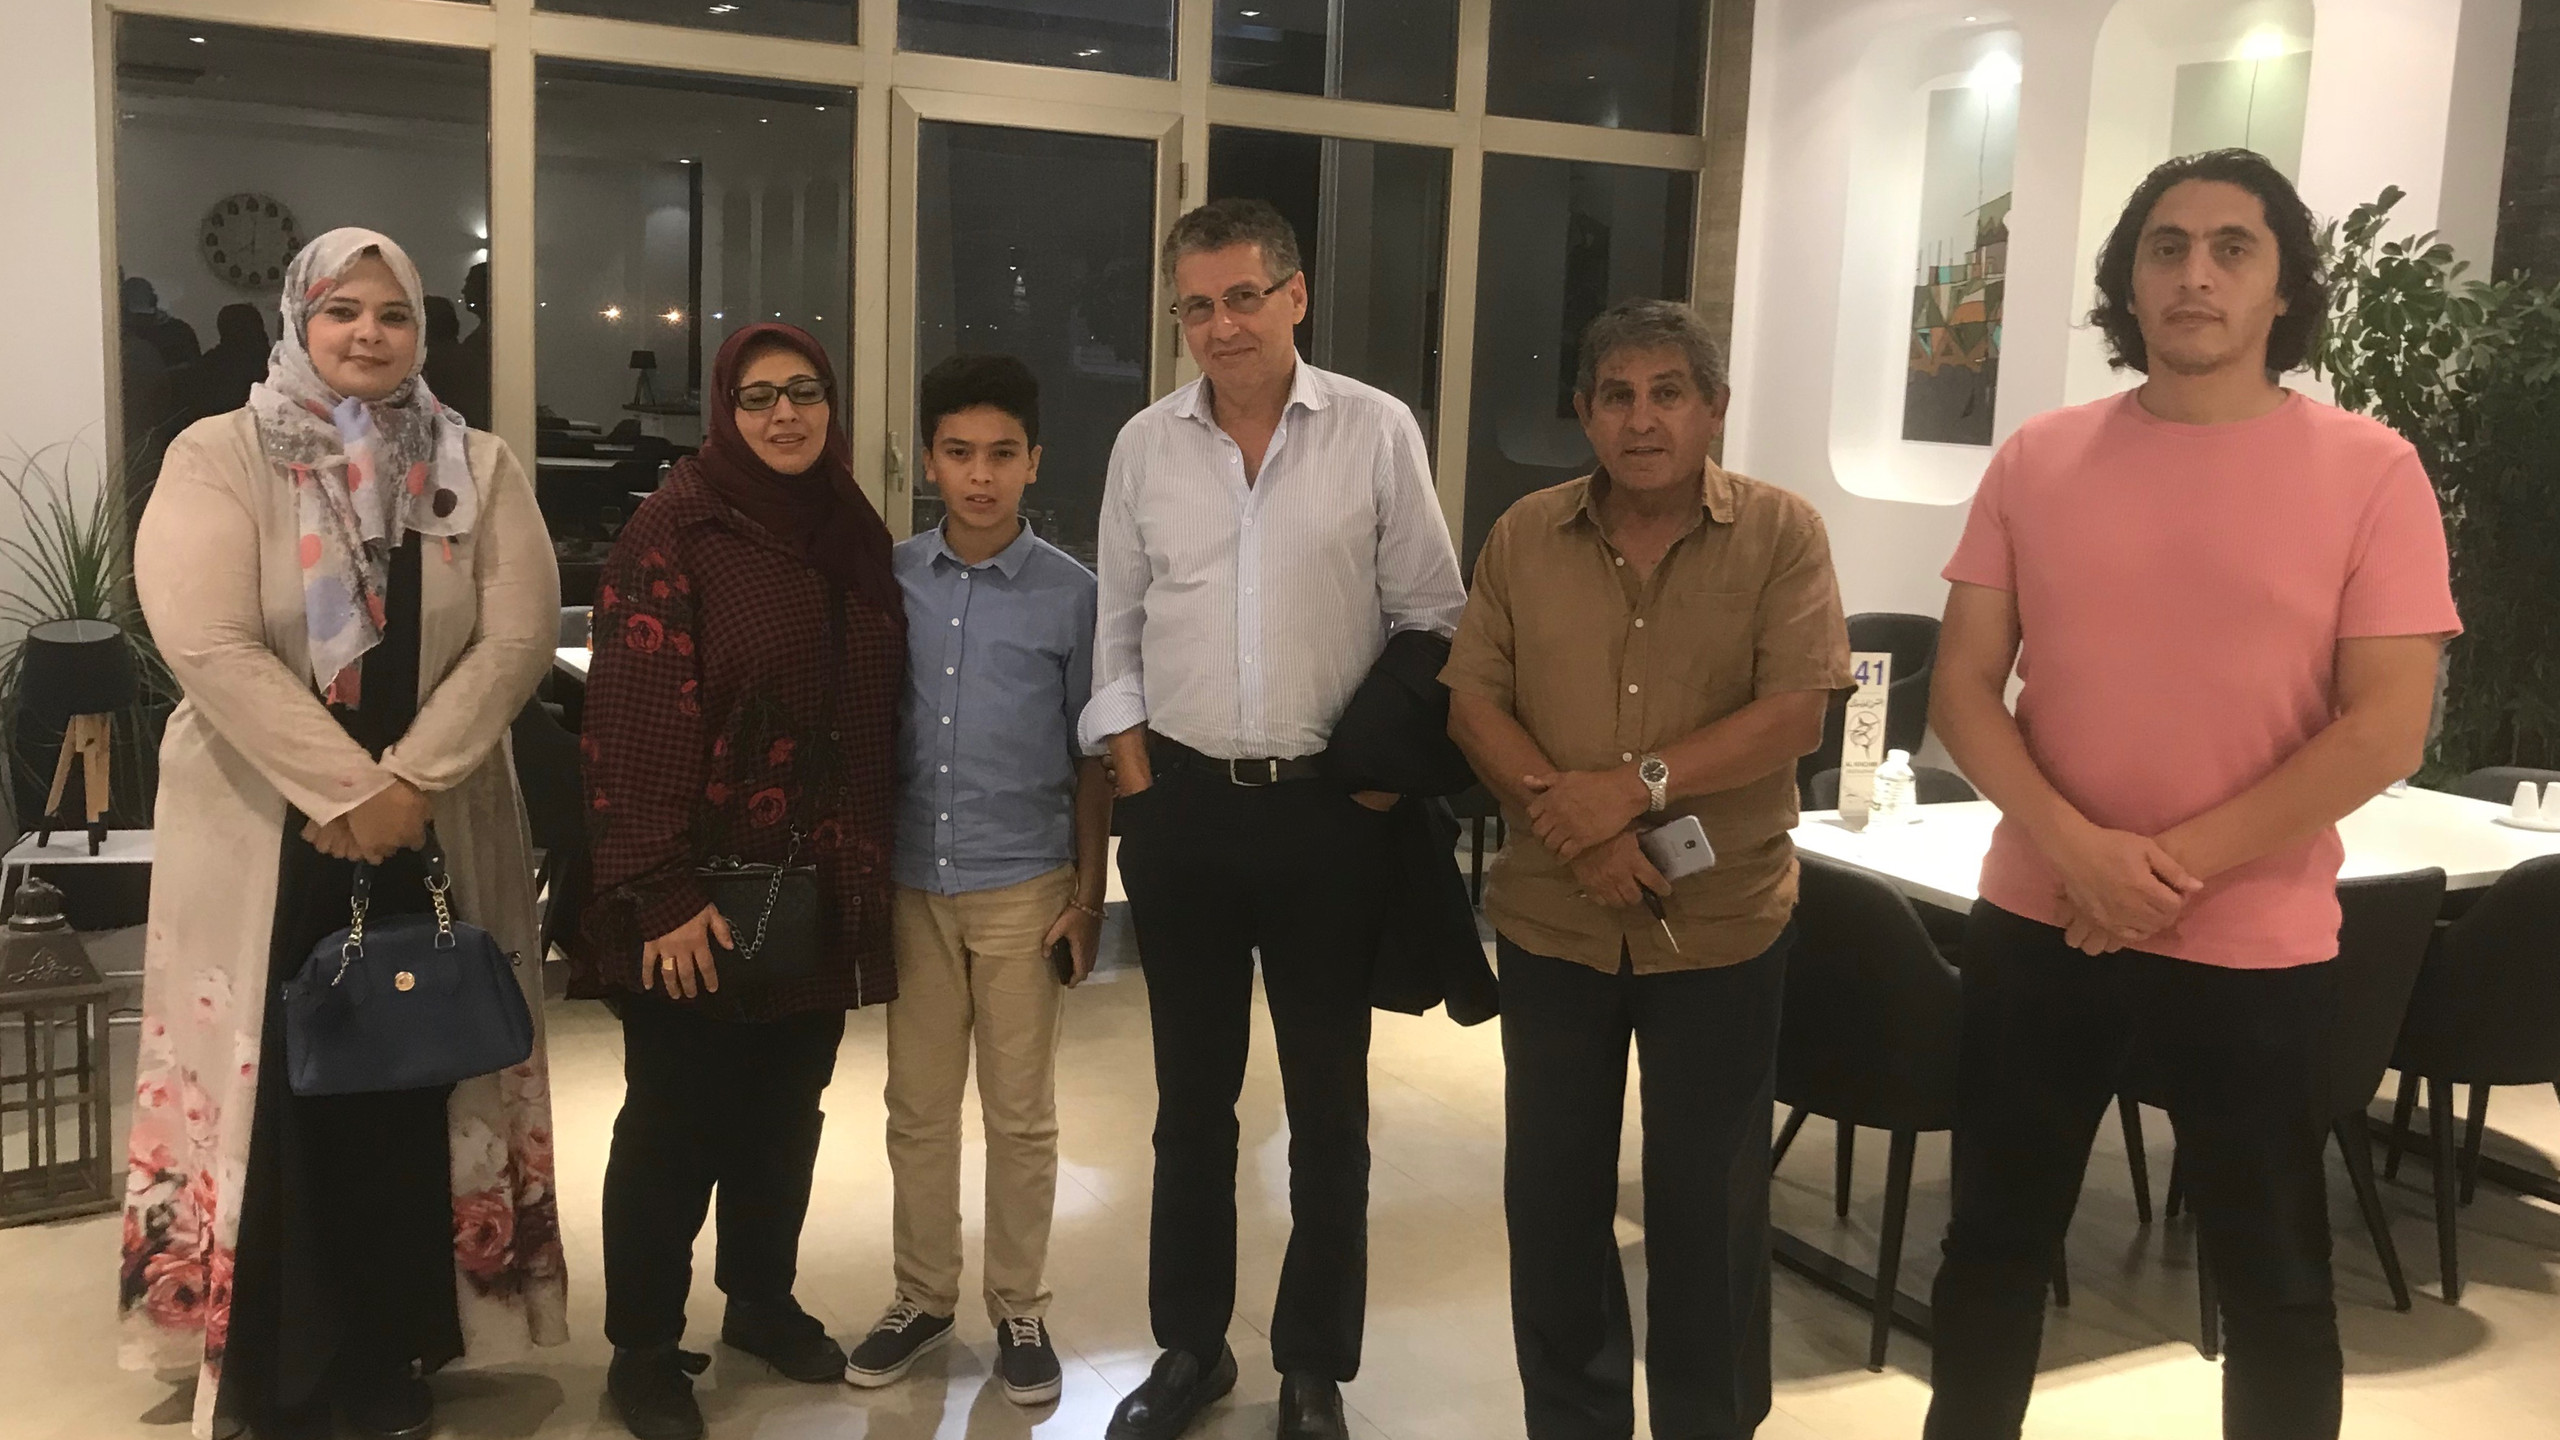 Dinner with the medical directors of the Benghazi Medical Center